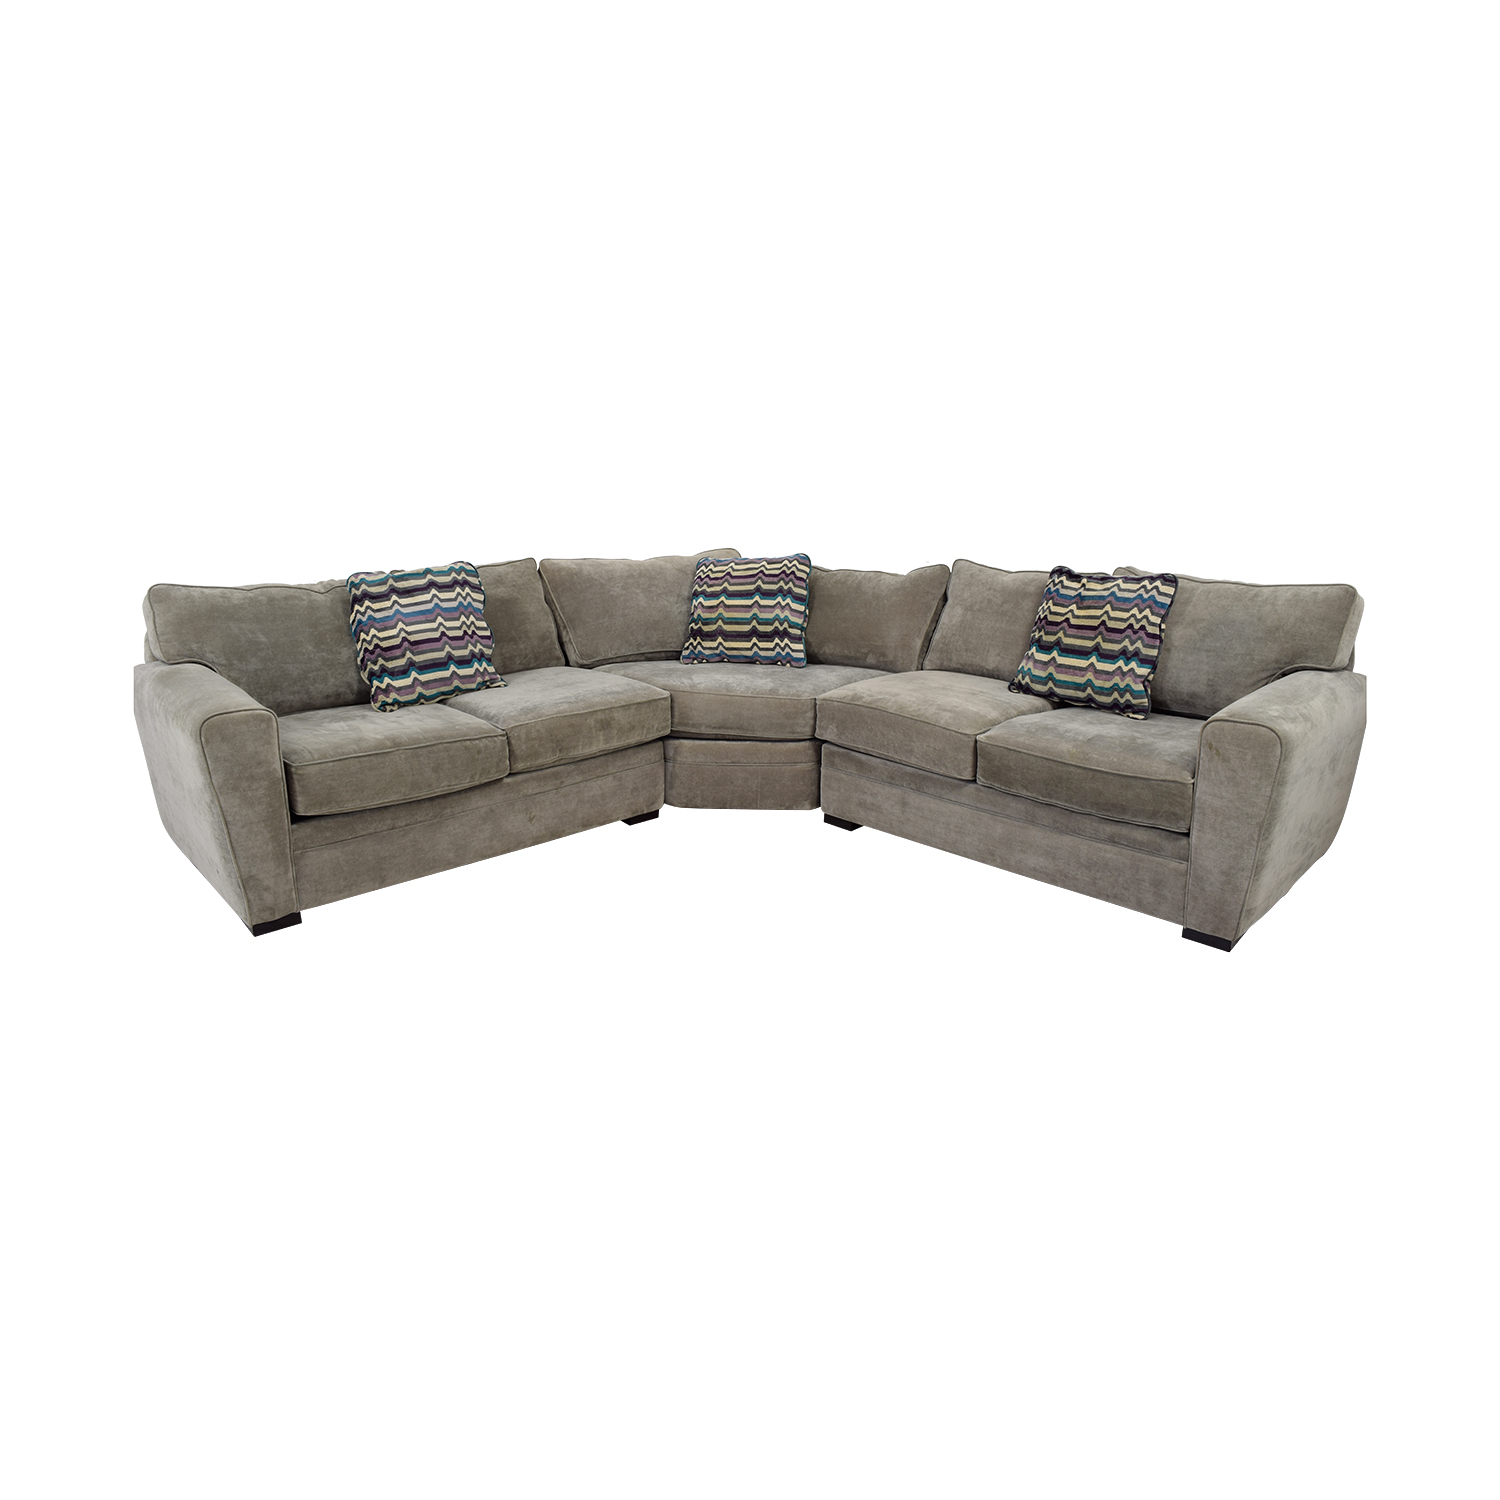 Raymour & Flanigan Raymour & Flanigan Grey L-Shaped Sectional